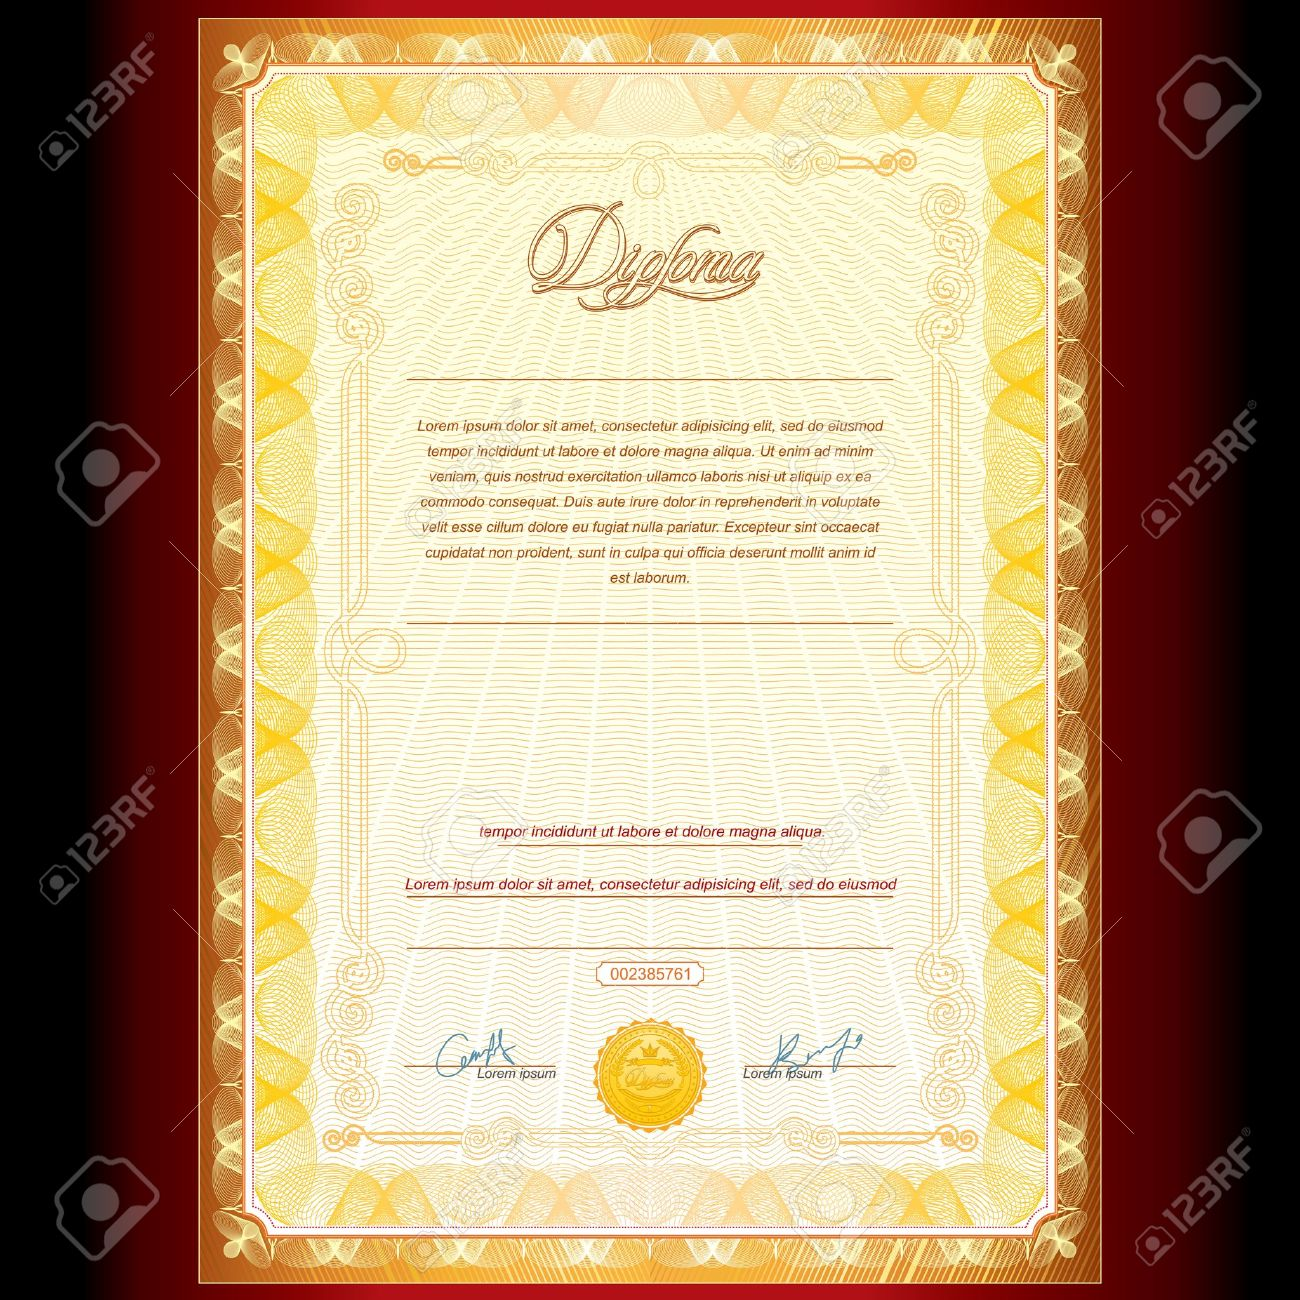 royal golden diploma vector background royalty cliparts  royal golden diploma vector background stock vector 15061134